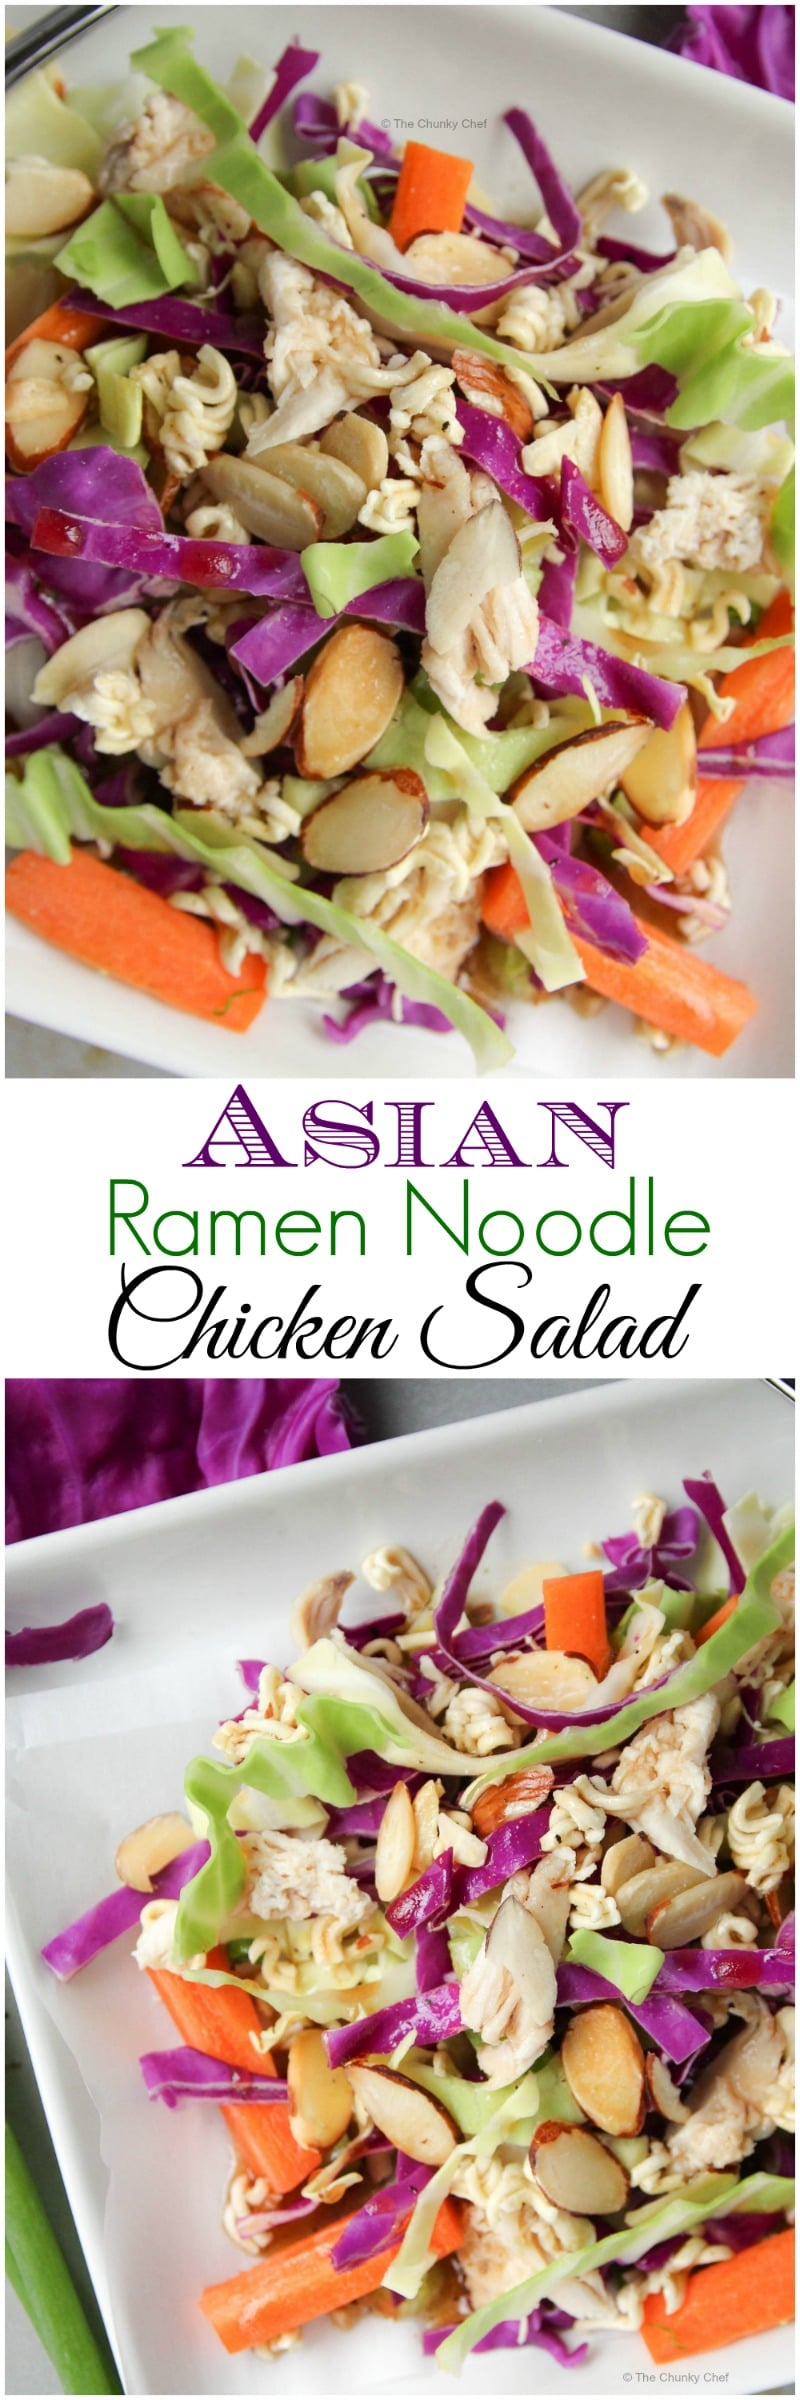 The classic ramen noodle salad gets bumped up to dinner status with the addition of juicy chicken